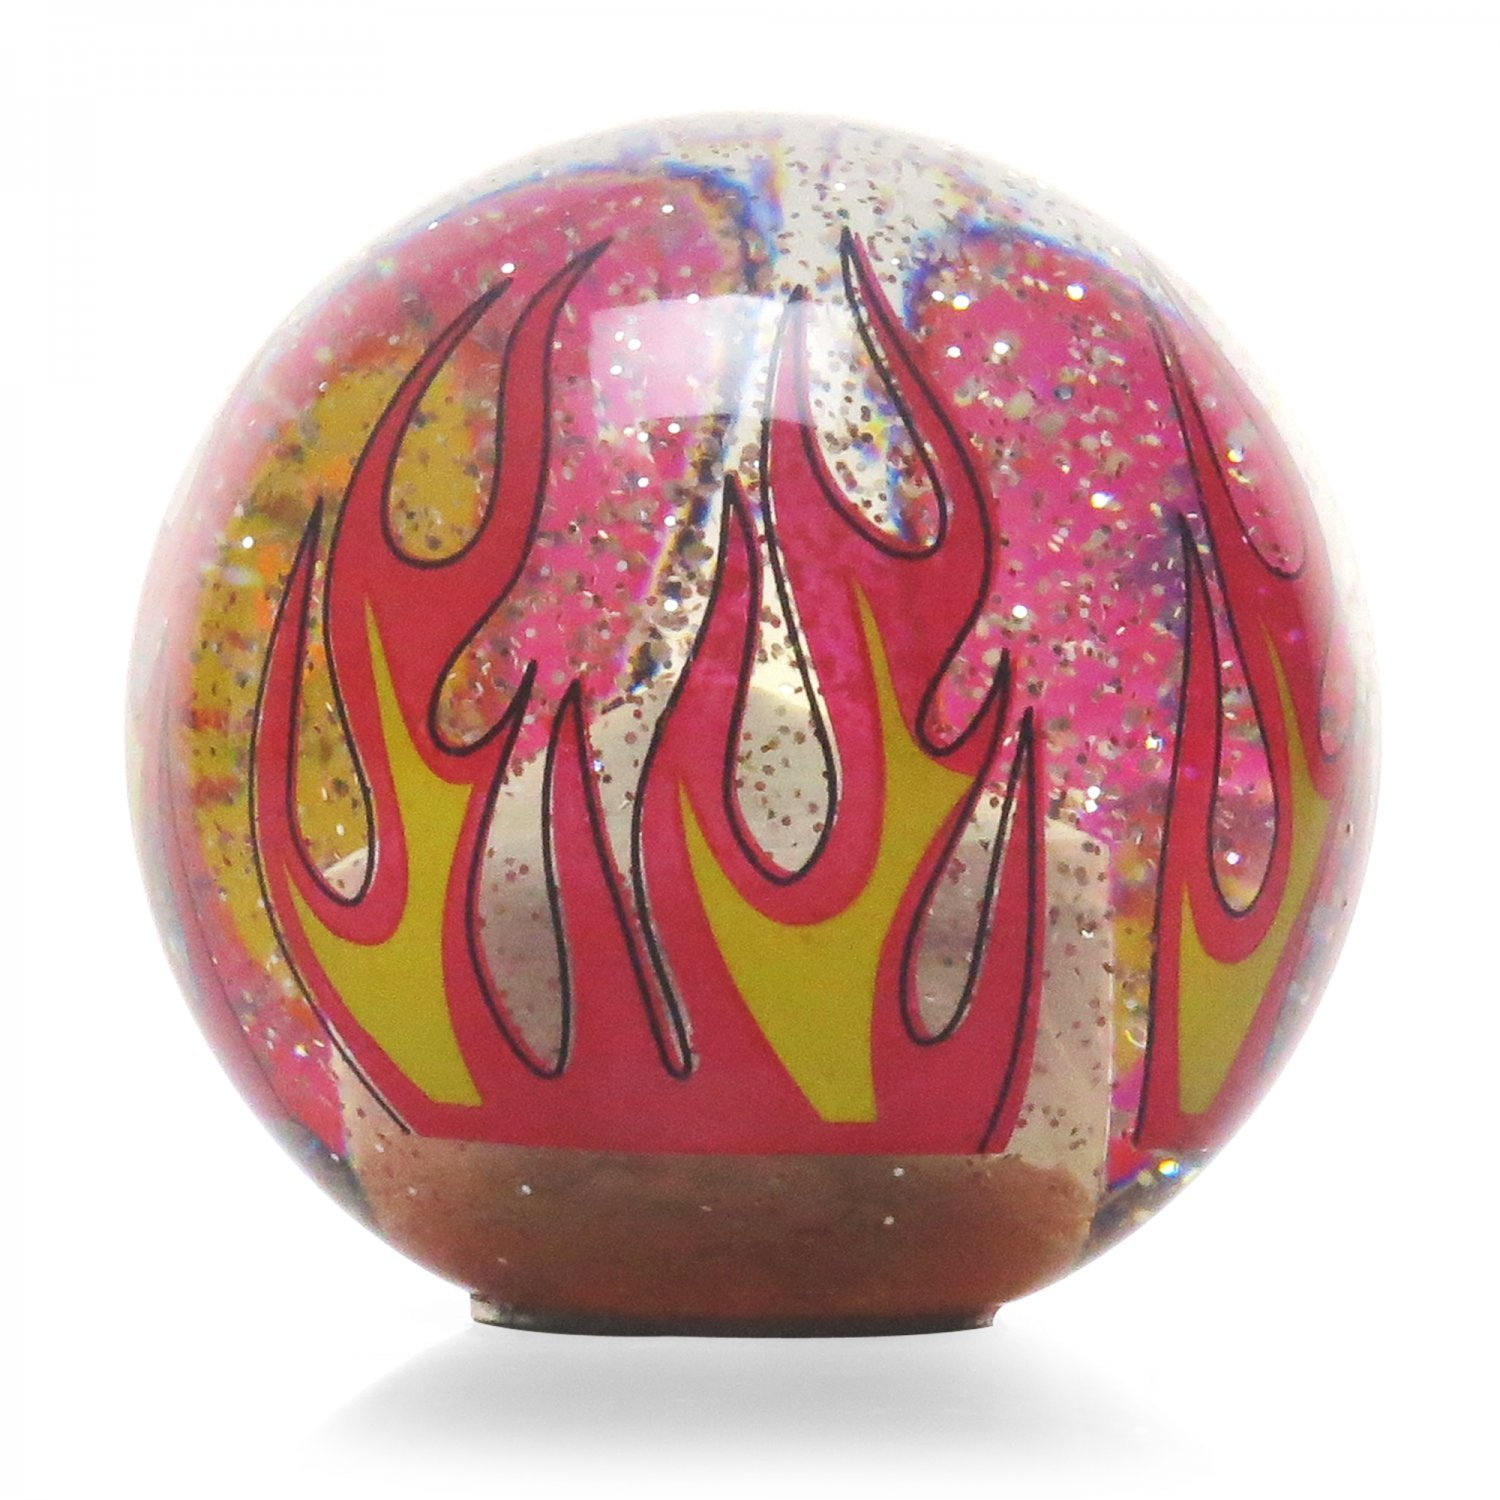 American Shifter 296400 Shift Knob Red VW Cog 1937 Clear Flame Metal Flake with M16 x 1.5 Insert